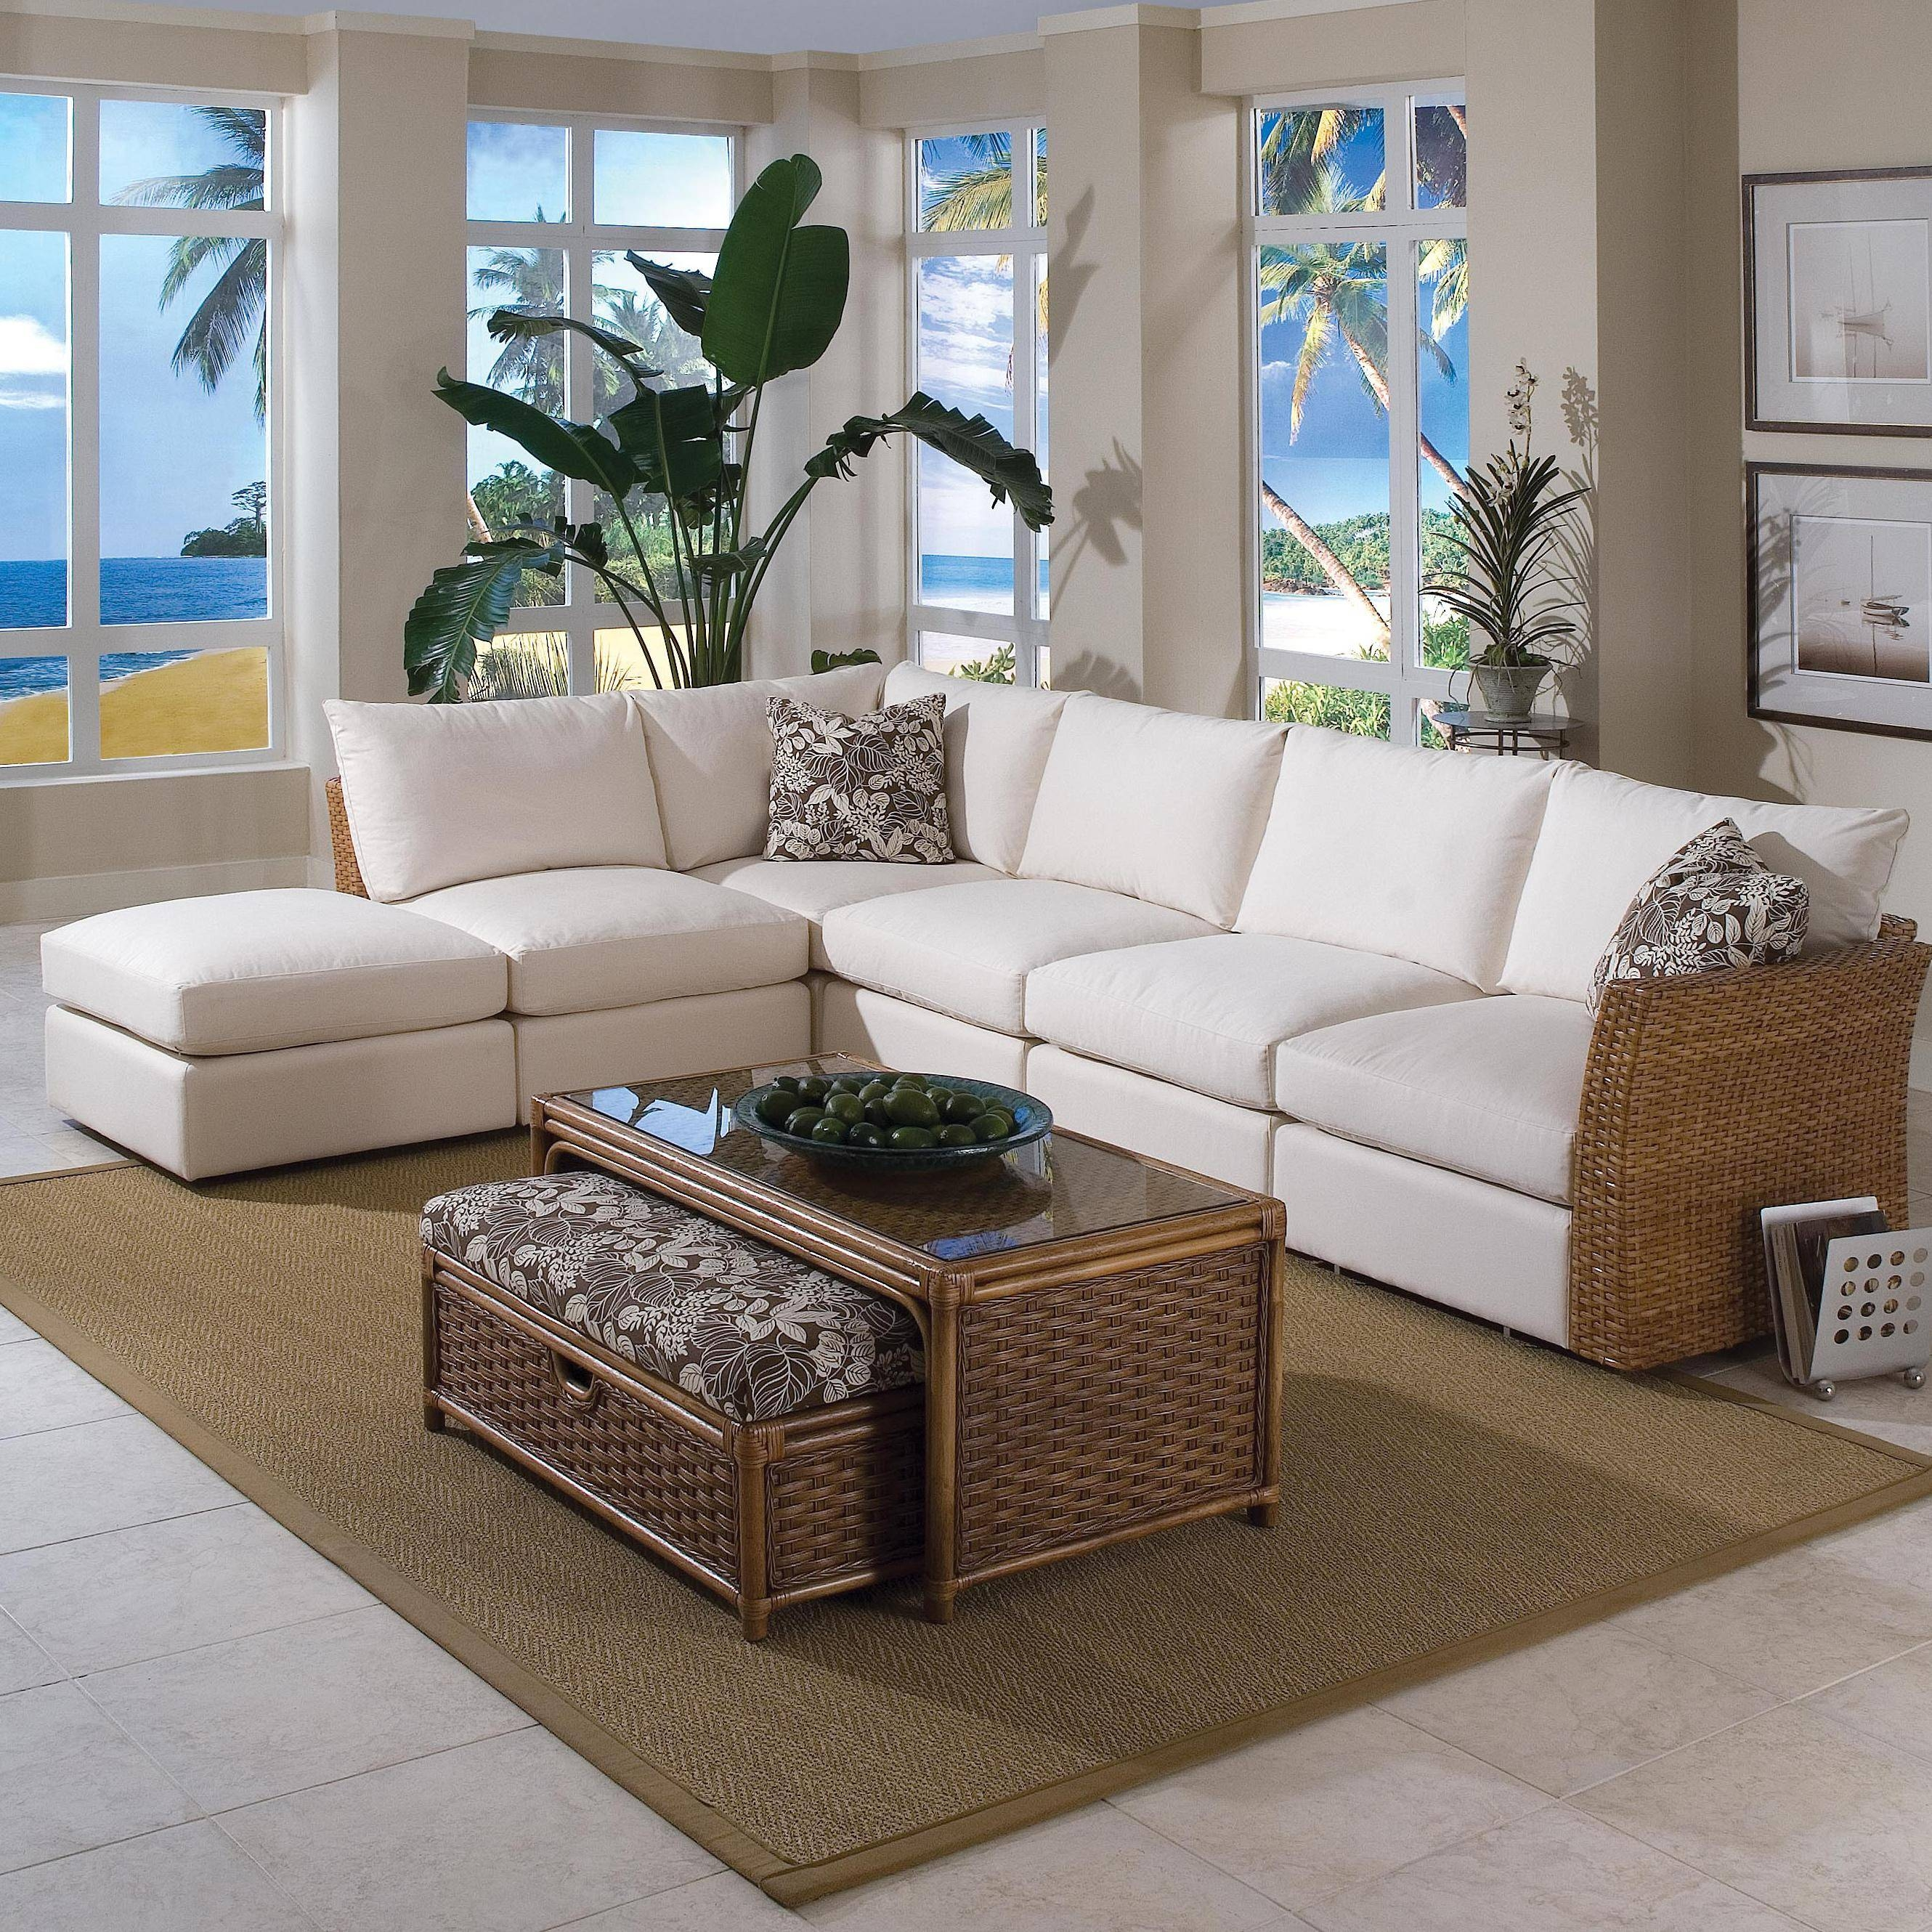 Cozy Sectional Sofas Havertys 21 For Abbyson Living Charlotte inside Abbyson Living Charlotte Beige Sectional Sofa And Ottoman (Image 10 of 30)